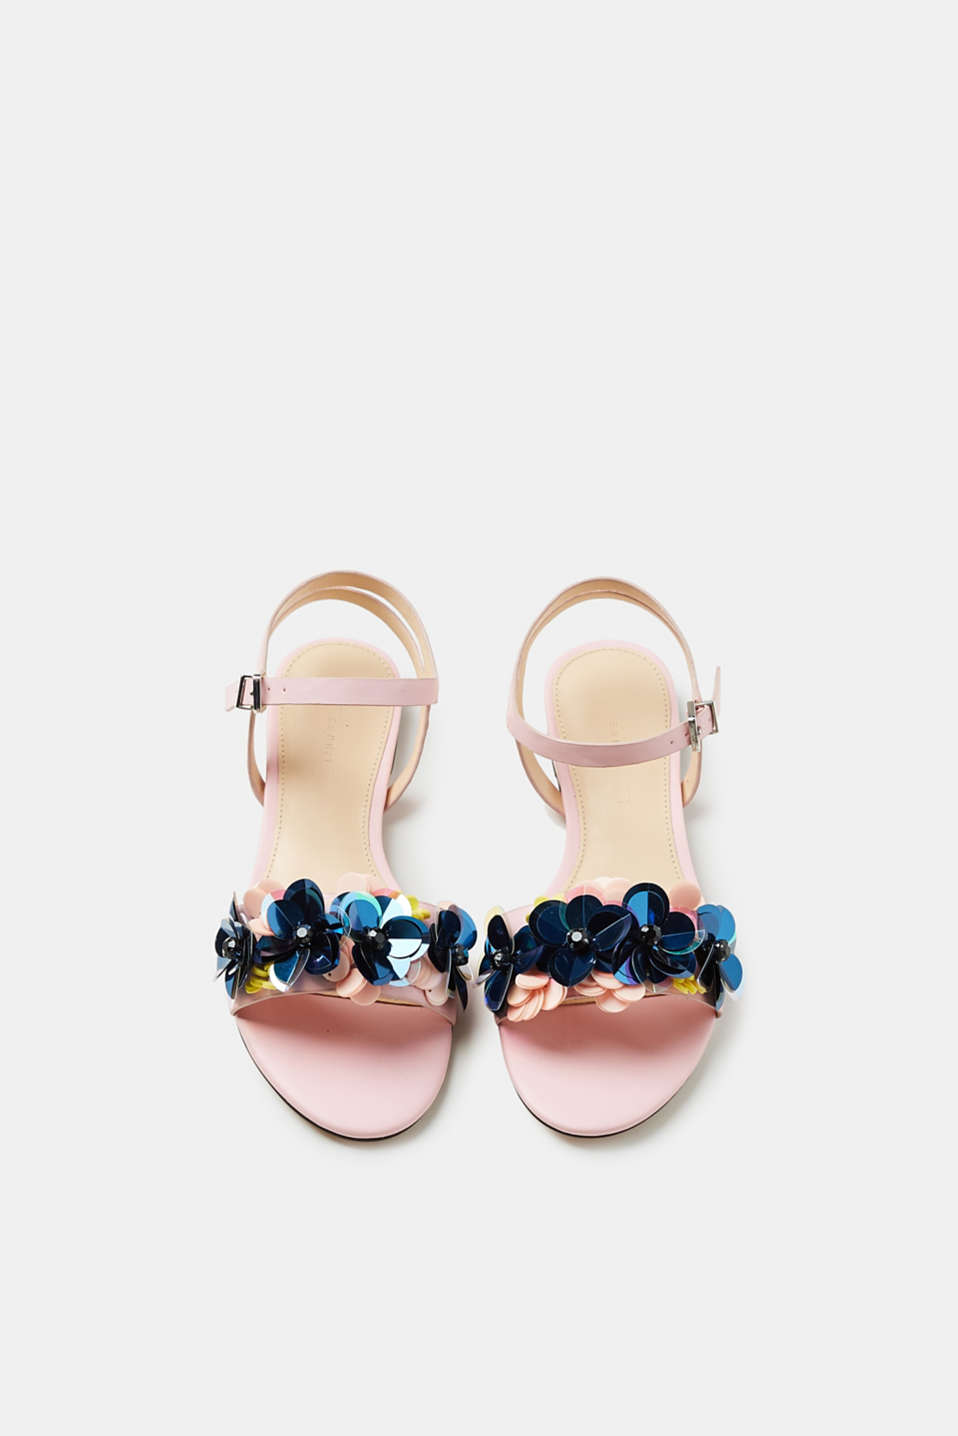 Sandals with sequins arranged in a floral style